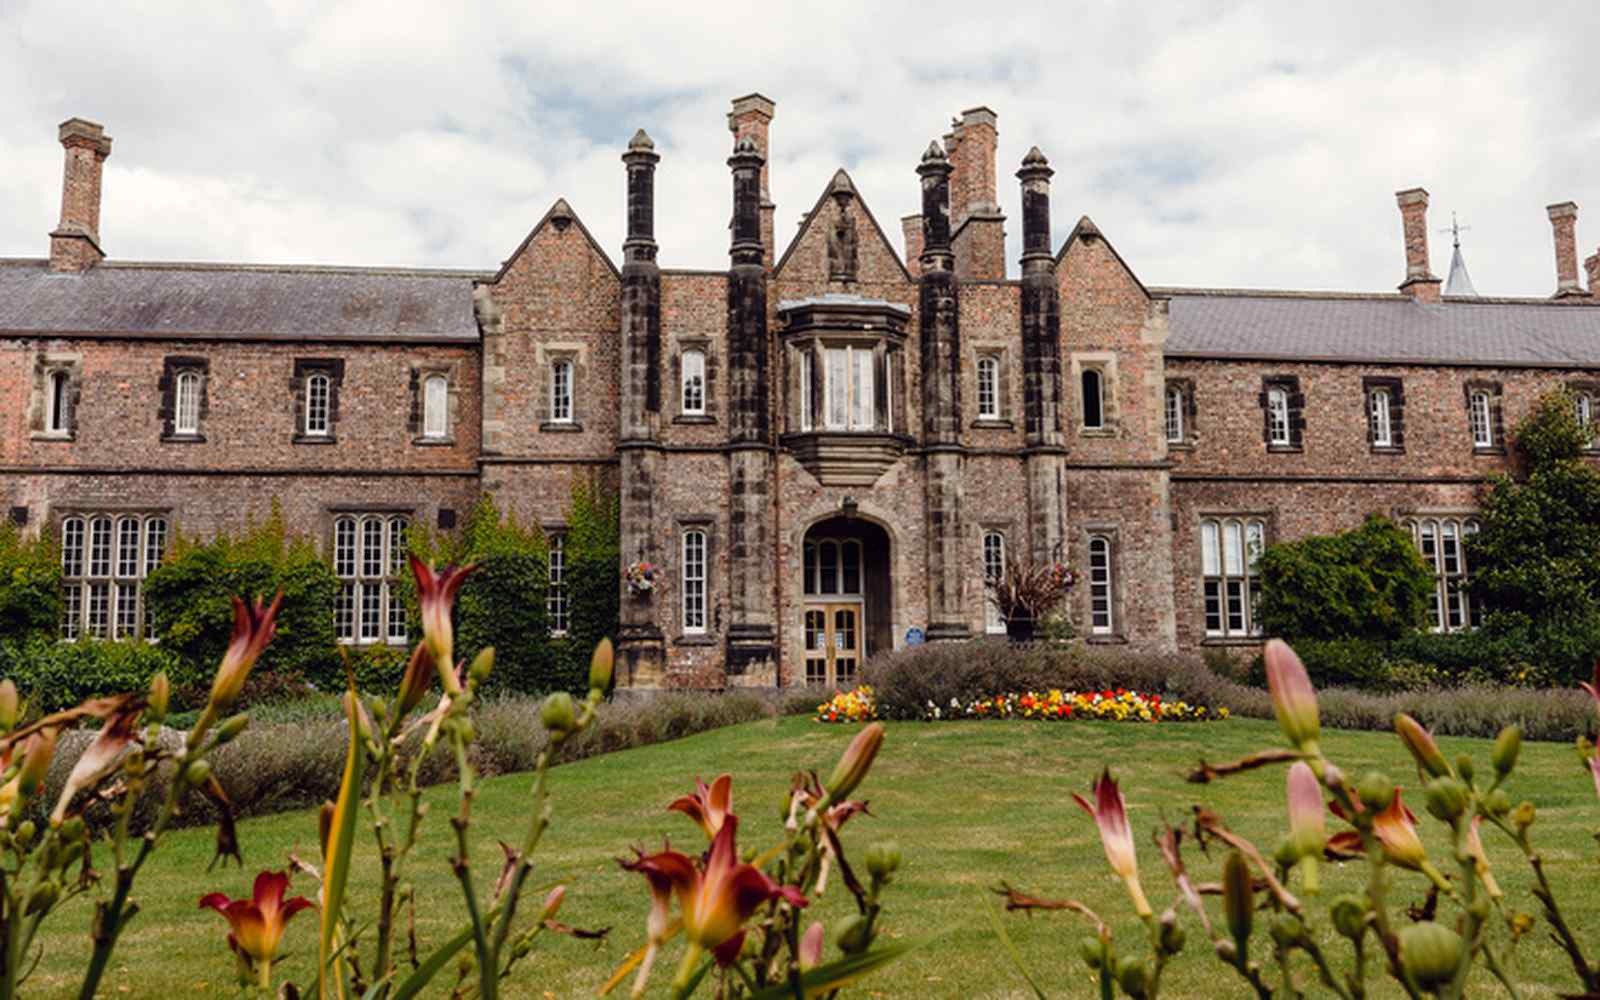 A wide shot of the historic front of YSJ with lawns and flowerbeds in the foreground